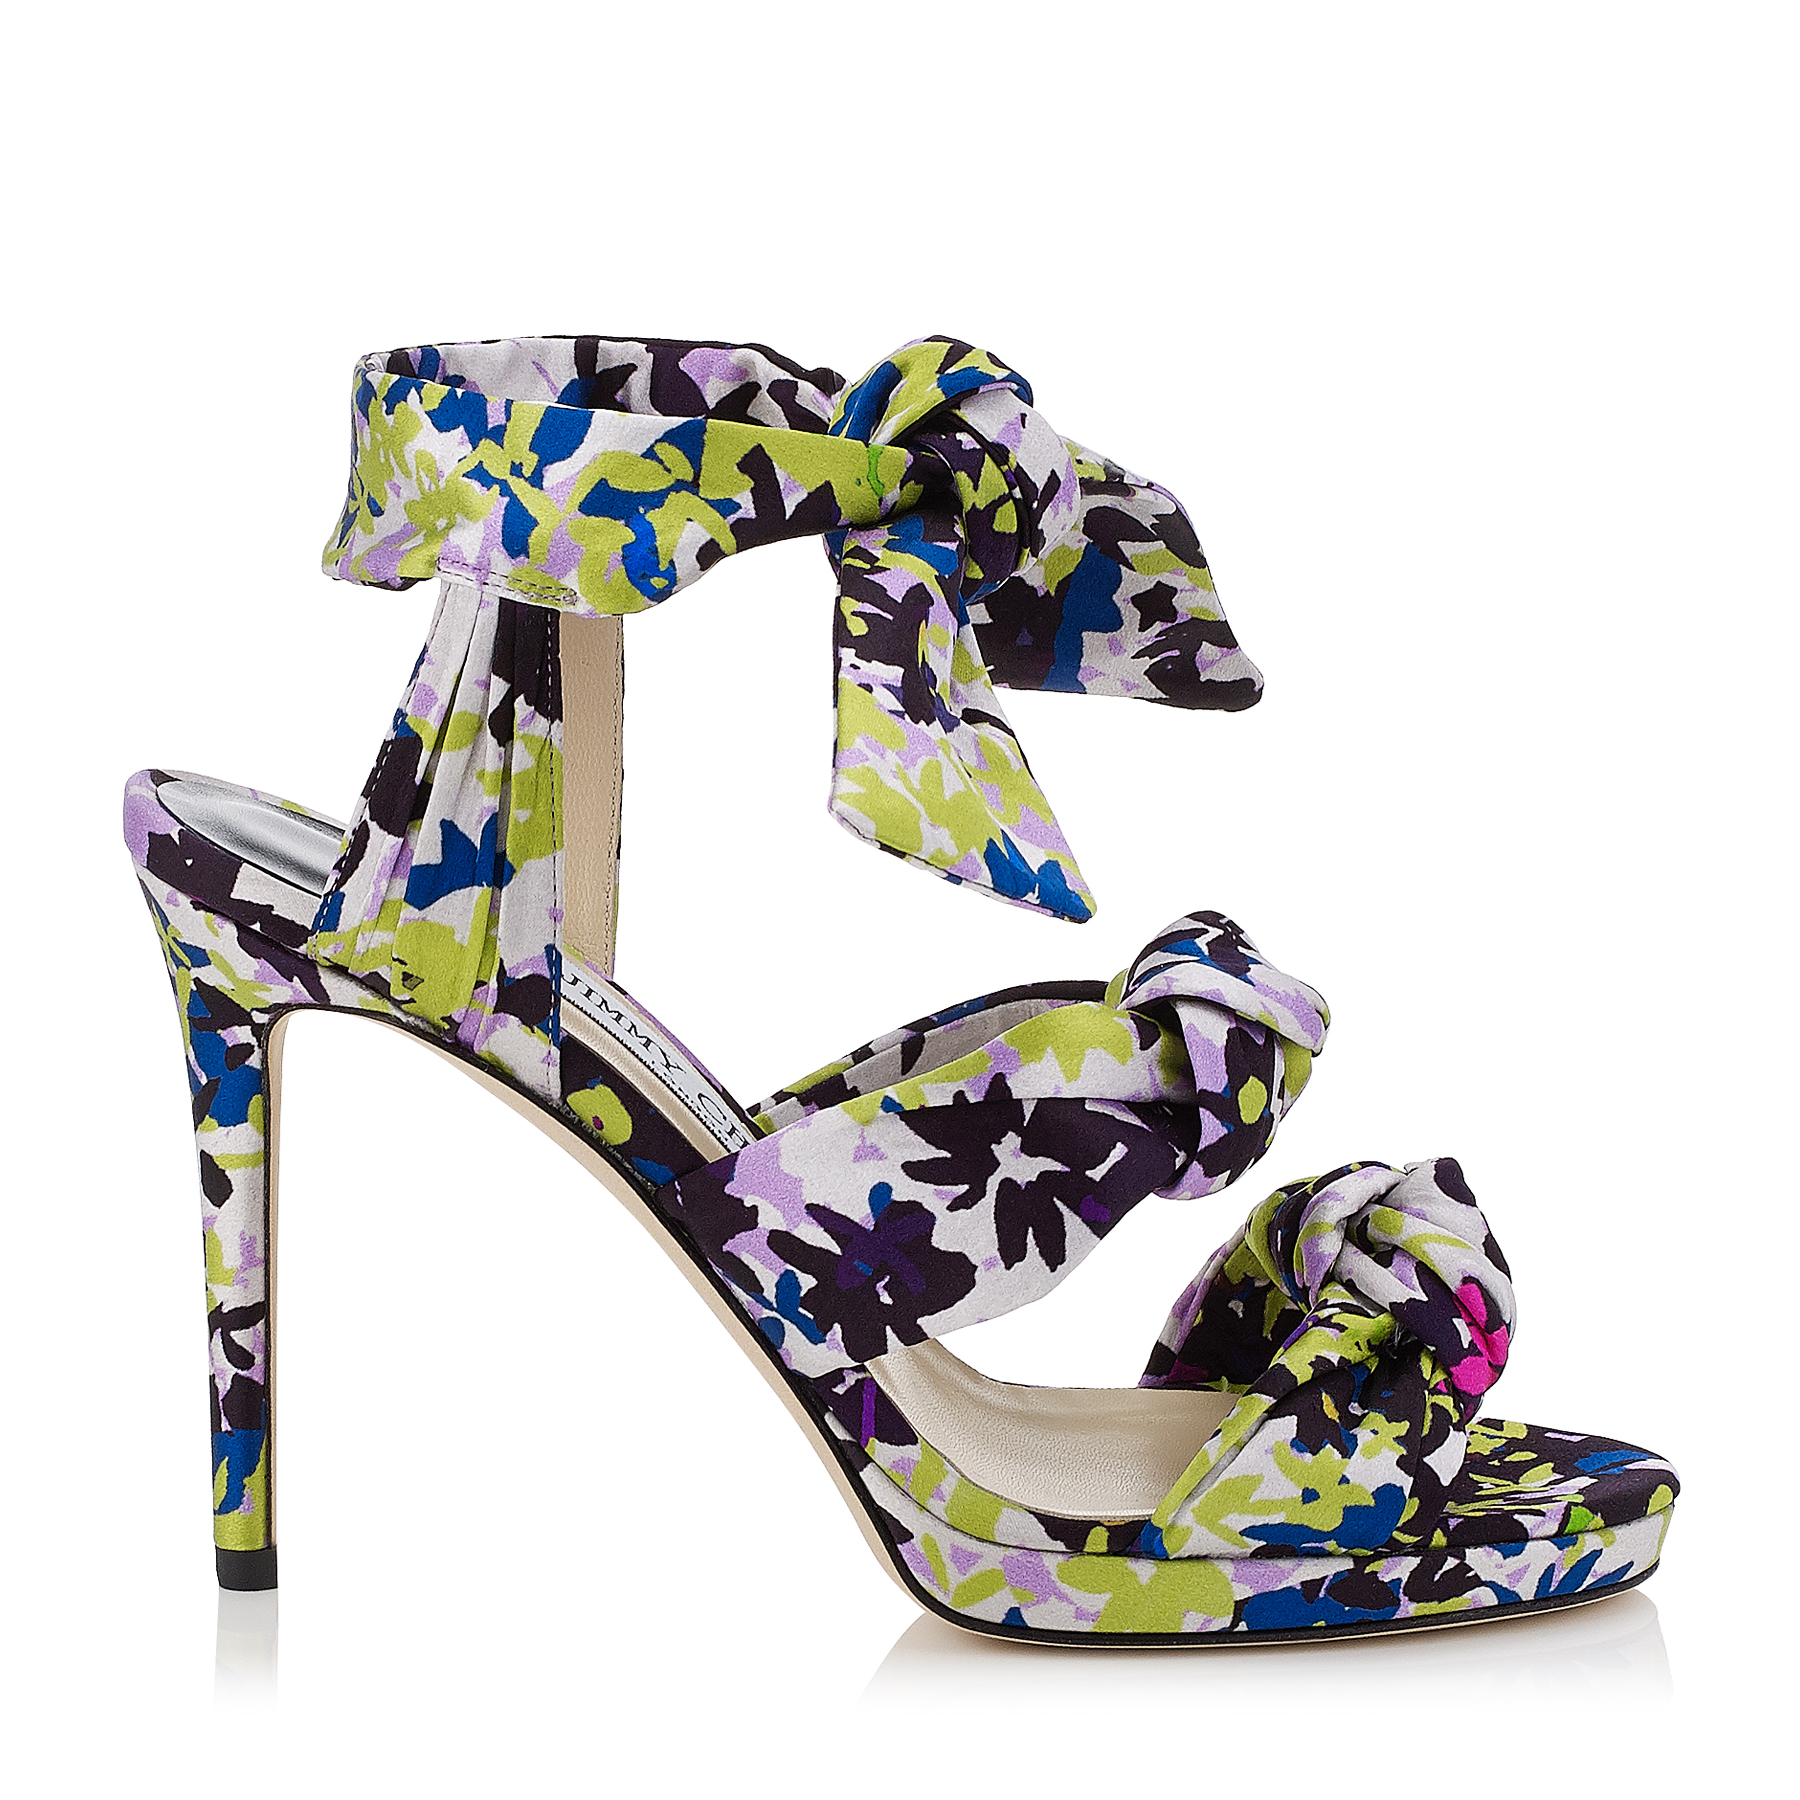 KRIS 100 Apple and Lilac Camoflower Print Satin Knotted Sandals